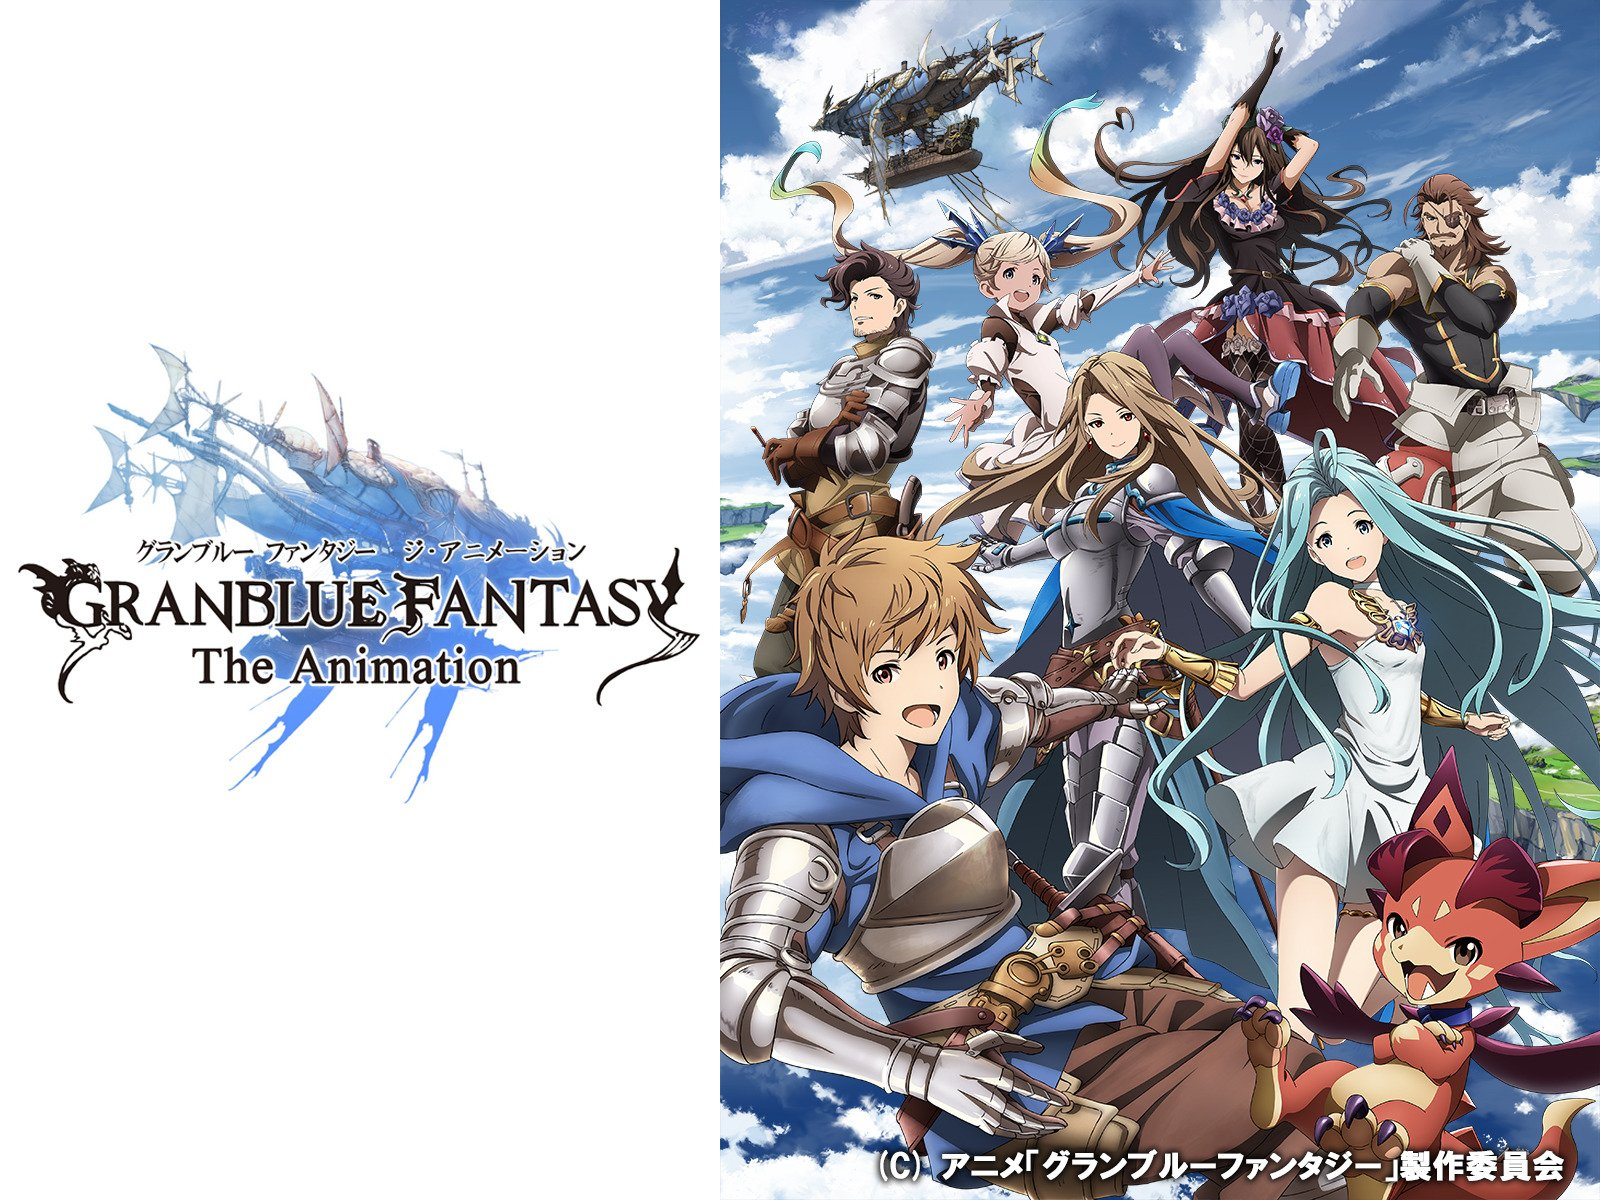 Amazon Co Jp Granblue Fantasy The Animationを観る Prime Video